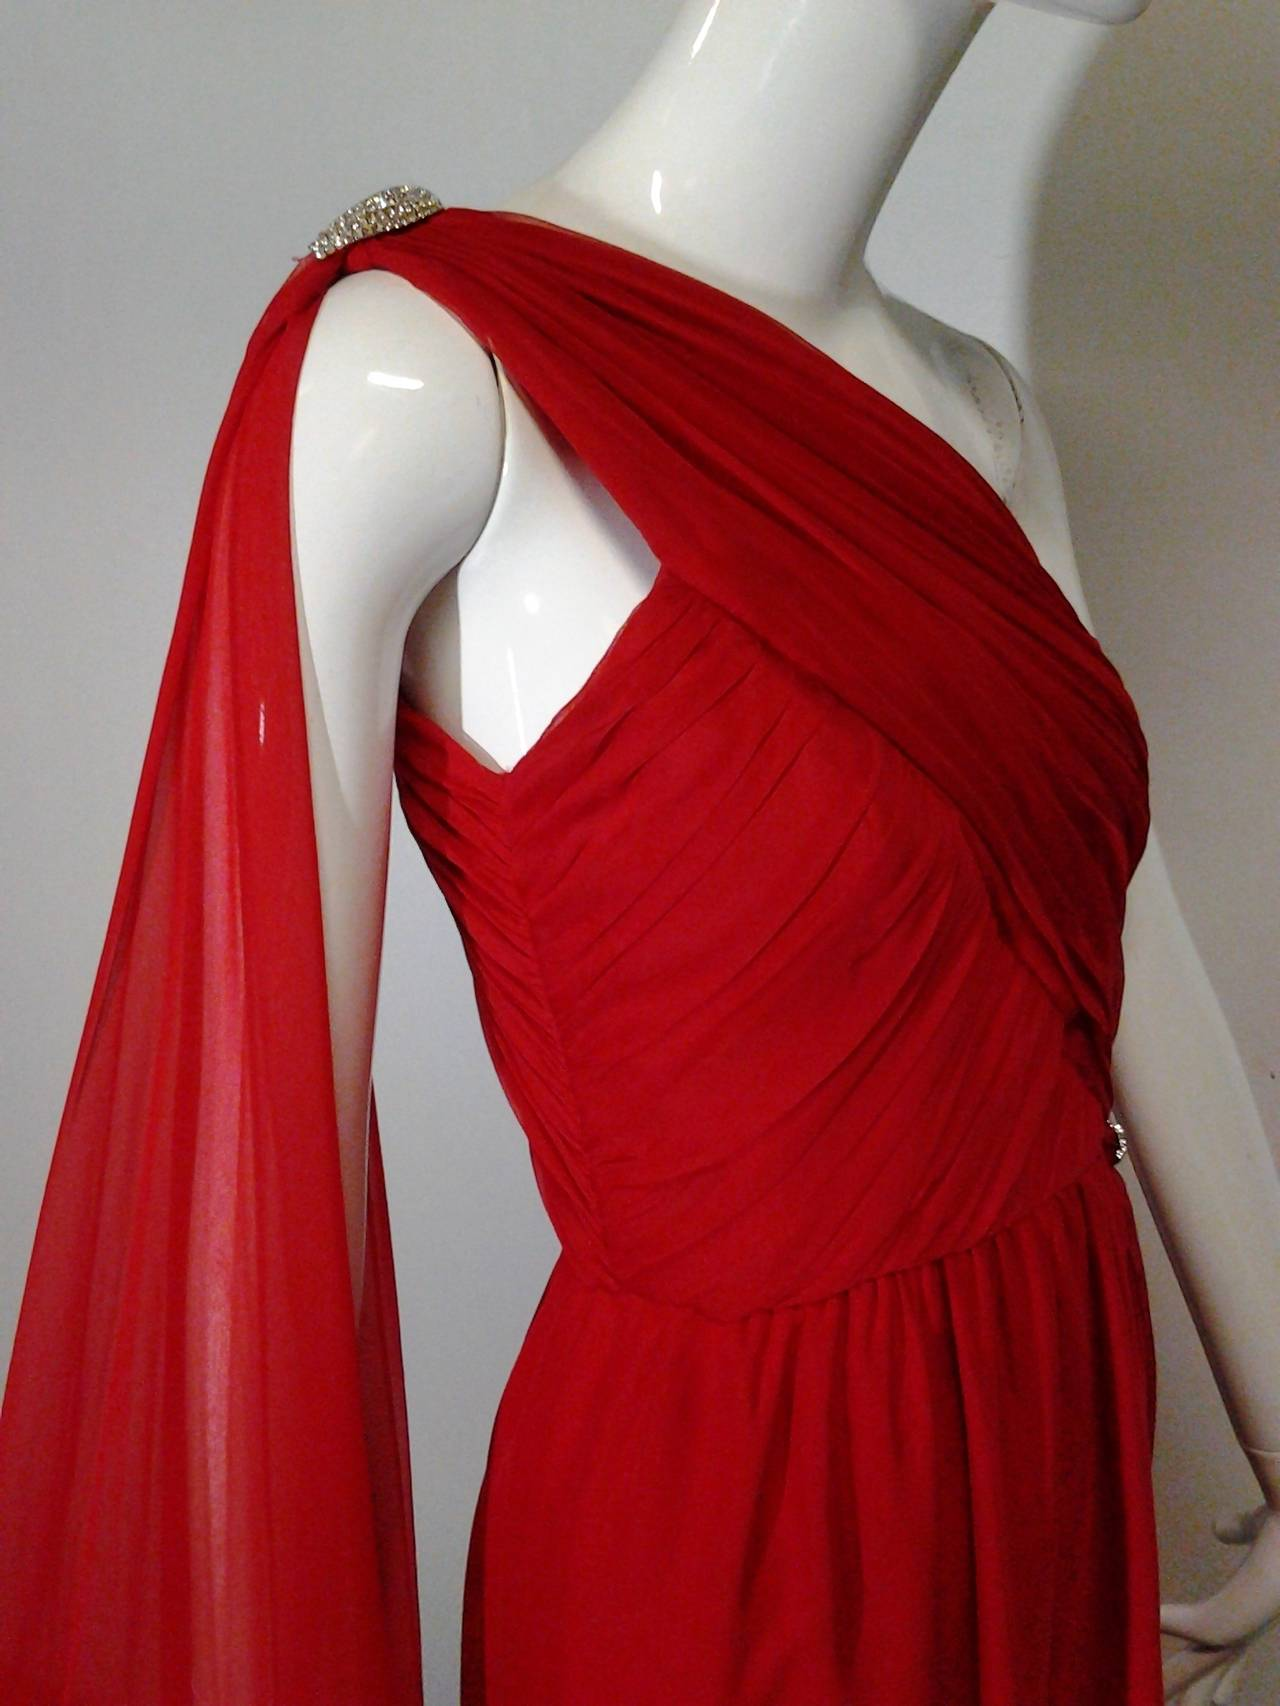 1980s Carolyne Roehm Vivid Red Silk Chiffon One-Shoulder Goddess Gown 5